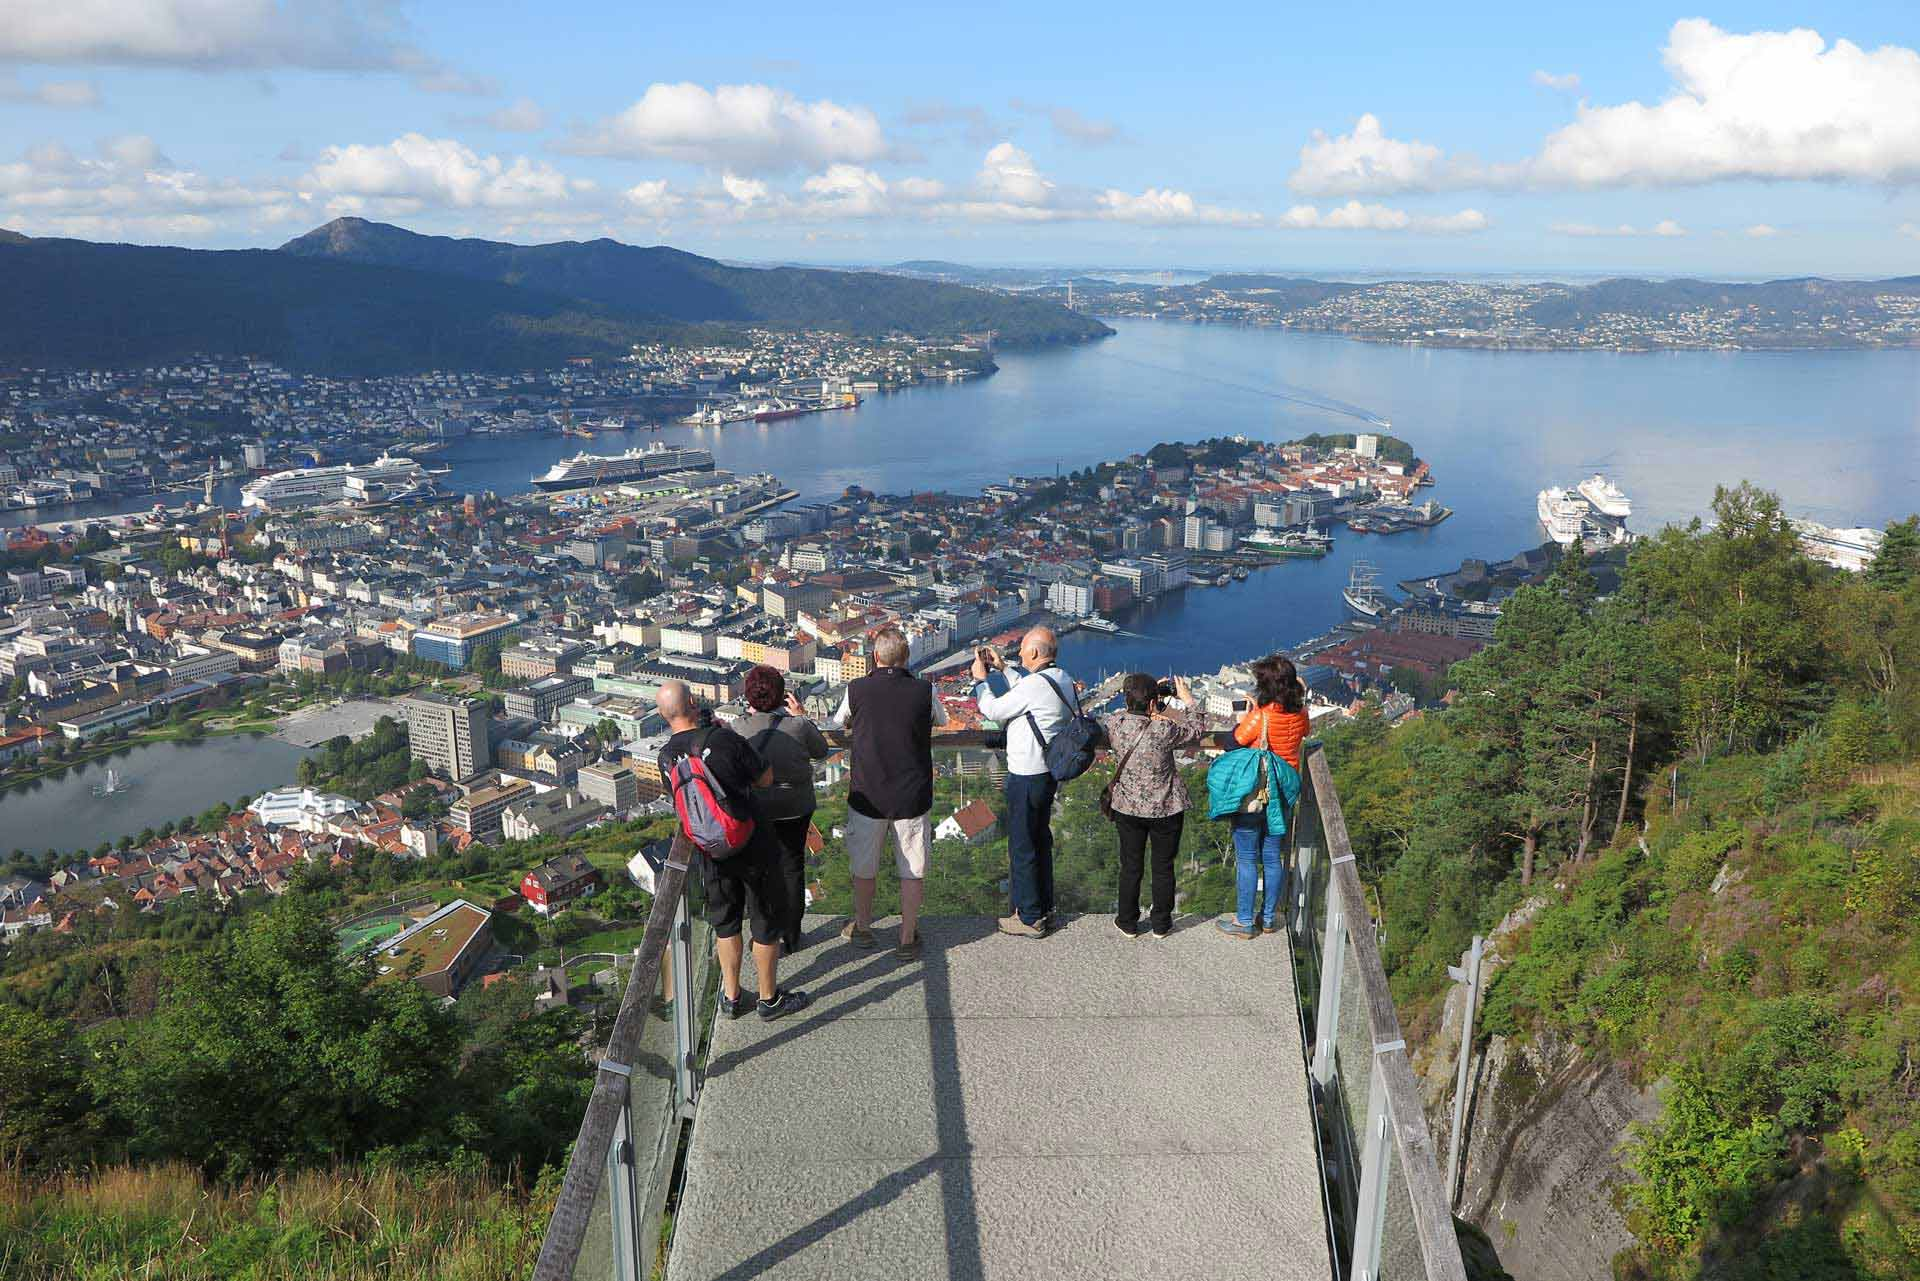 Part of the viewing platform of Mount Fløyen in Bergen, Norway